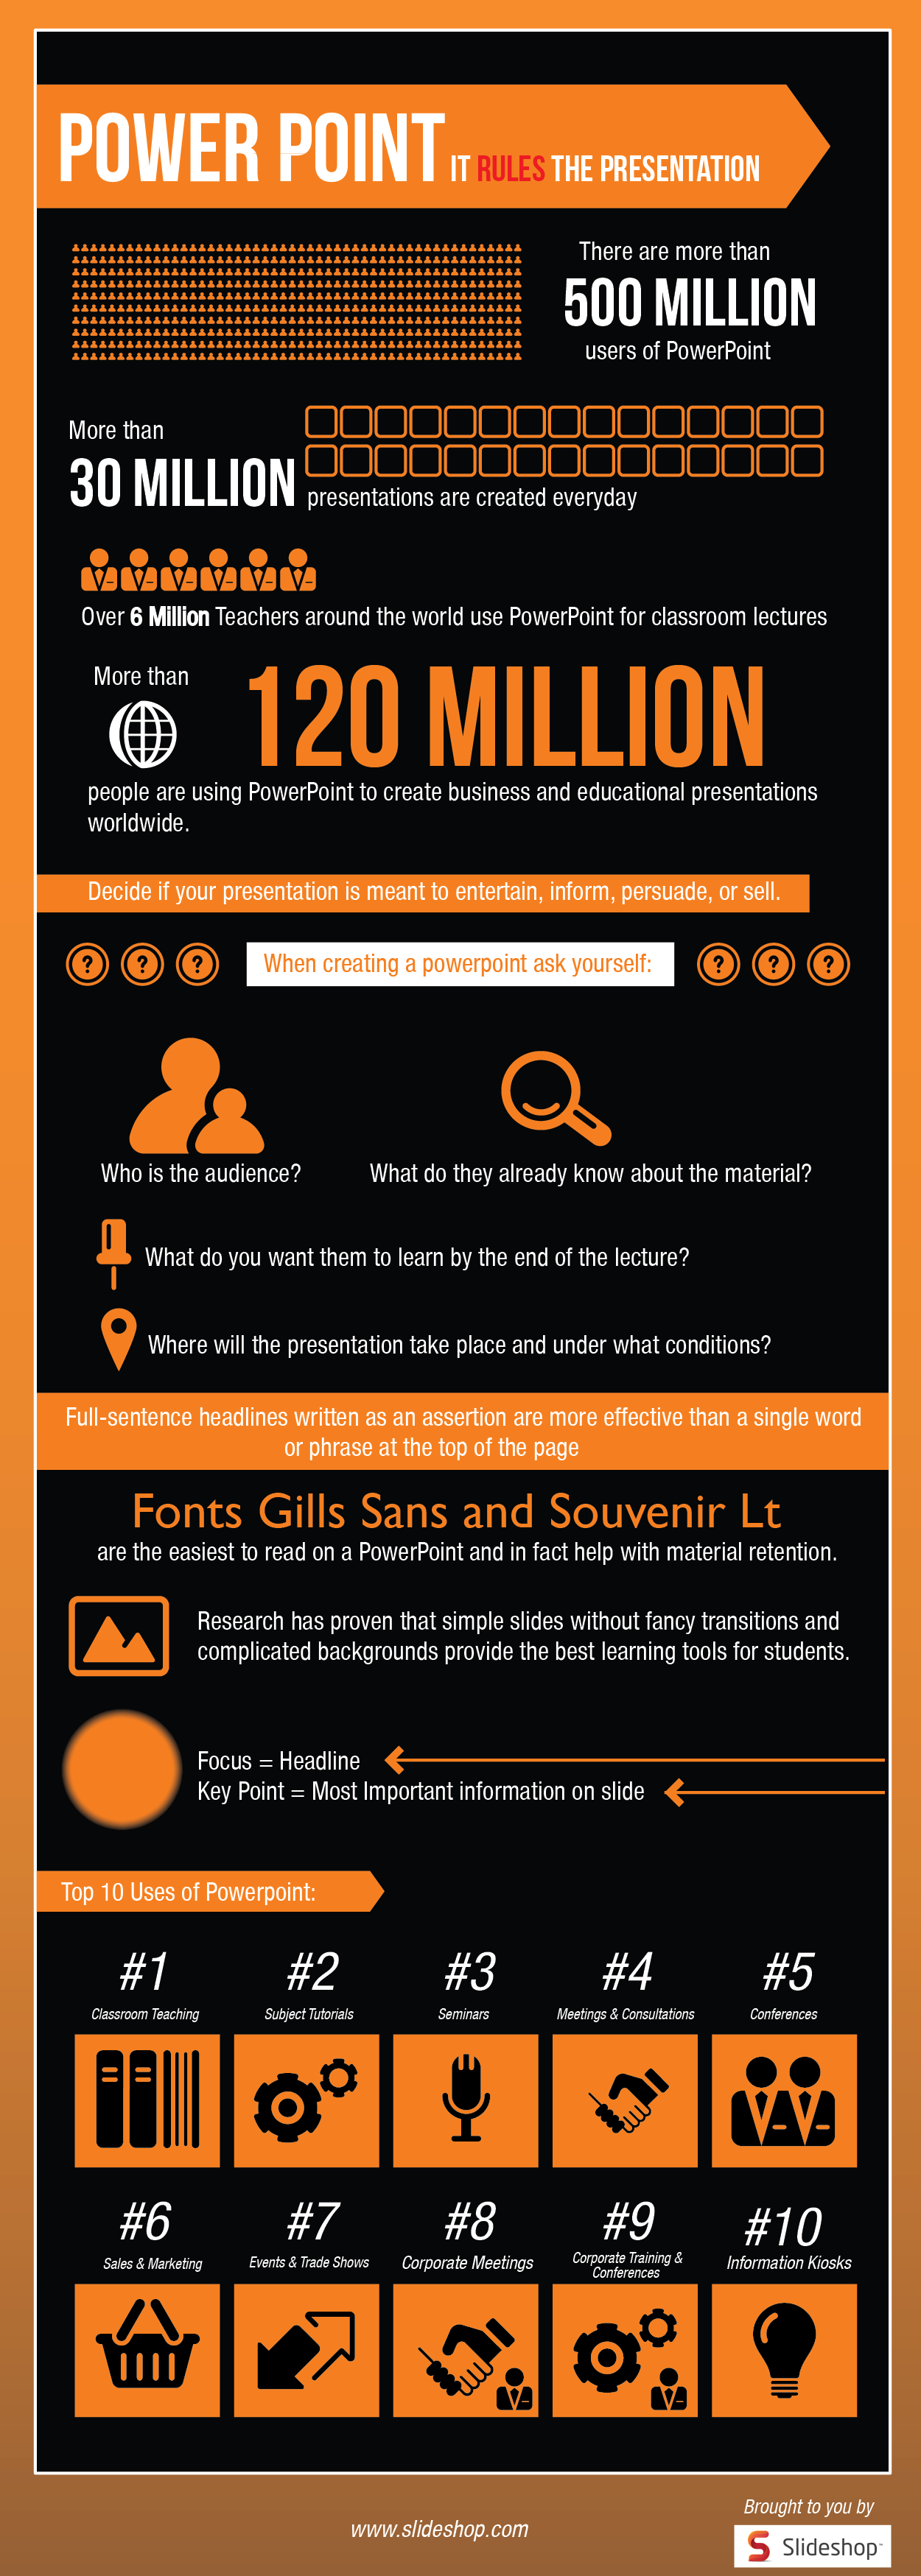 powerpoint-it-rules-the-presentation_5047e49521694